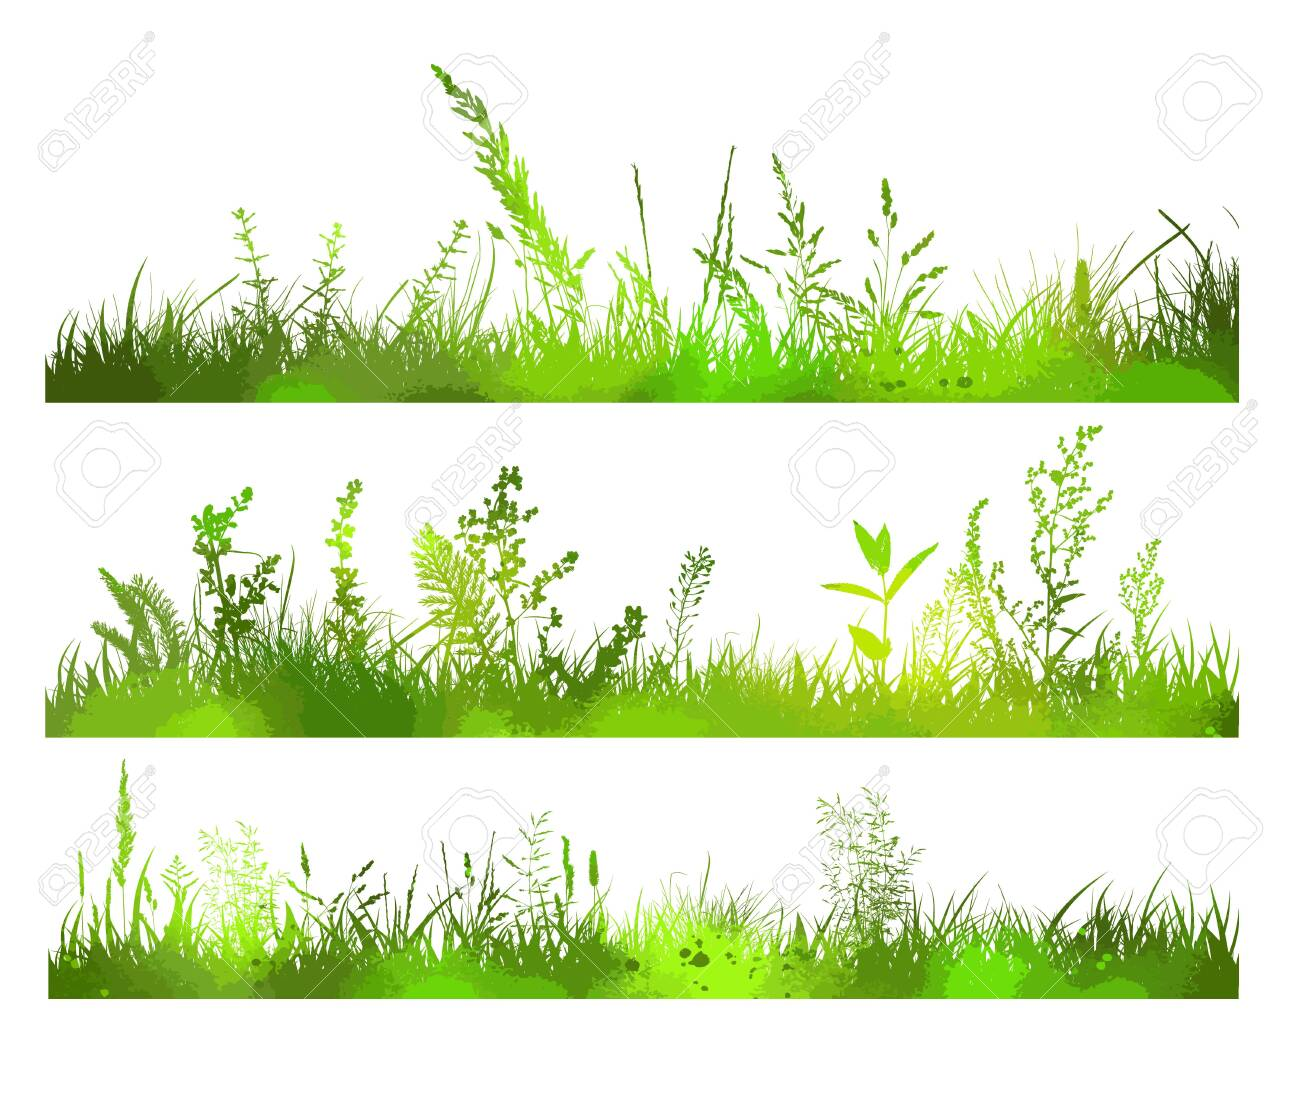 Abstract background with black silhouettes of meadow wild herbs and flowers. Wildflowers. Floral background. Wild grass. Vector illustration. - 149135972